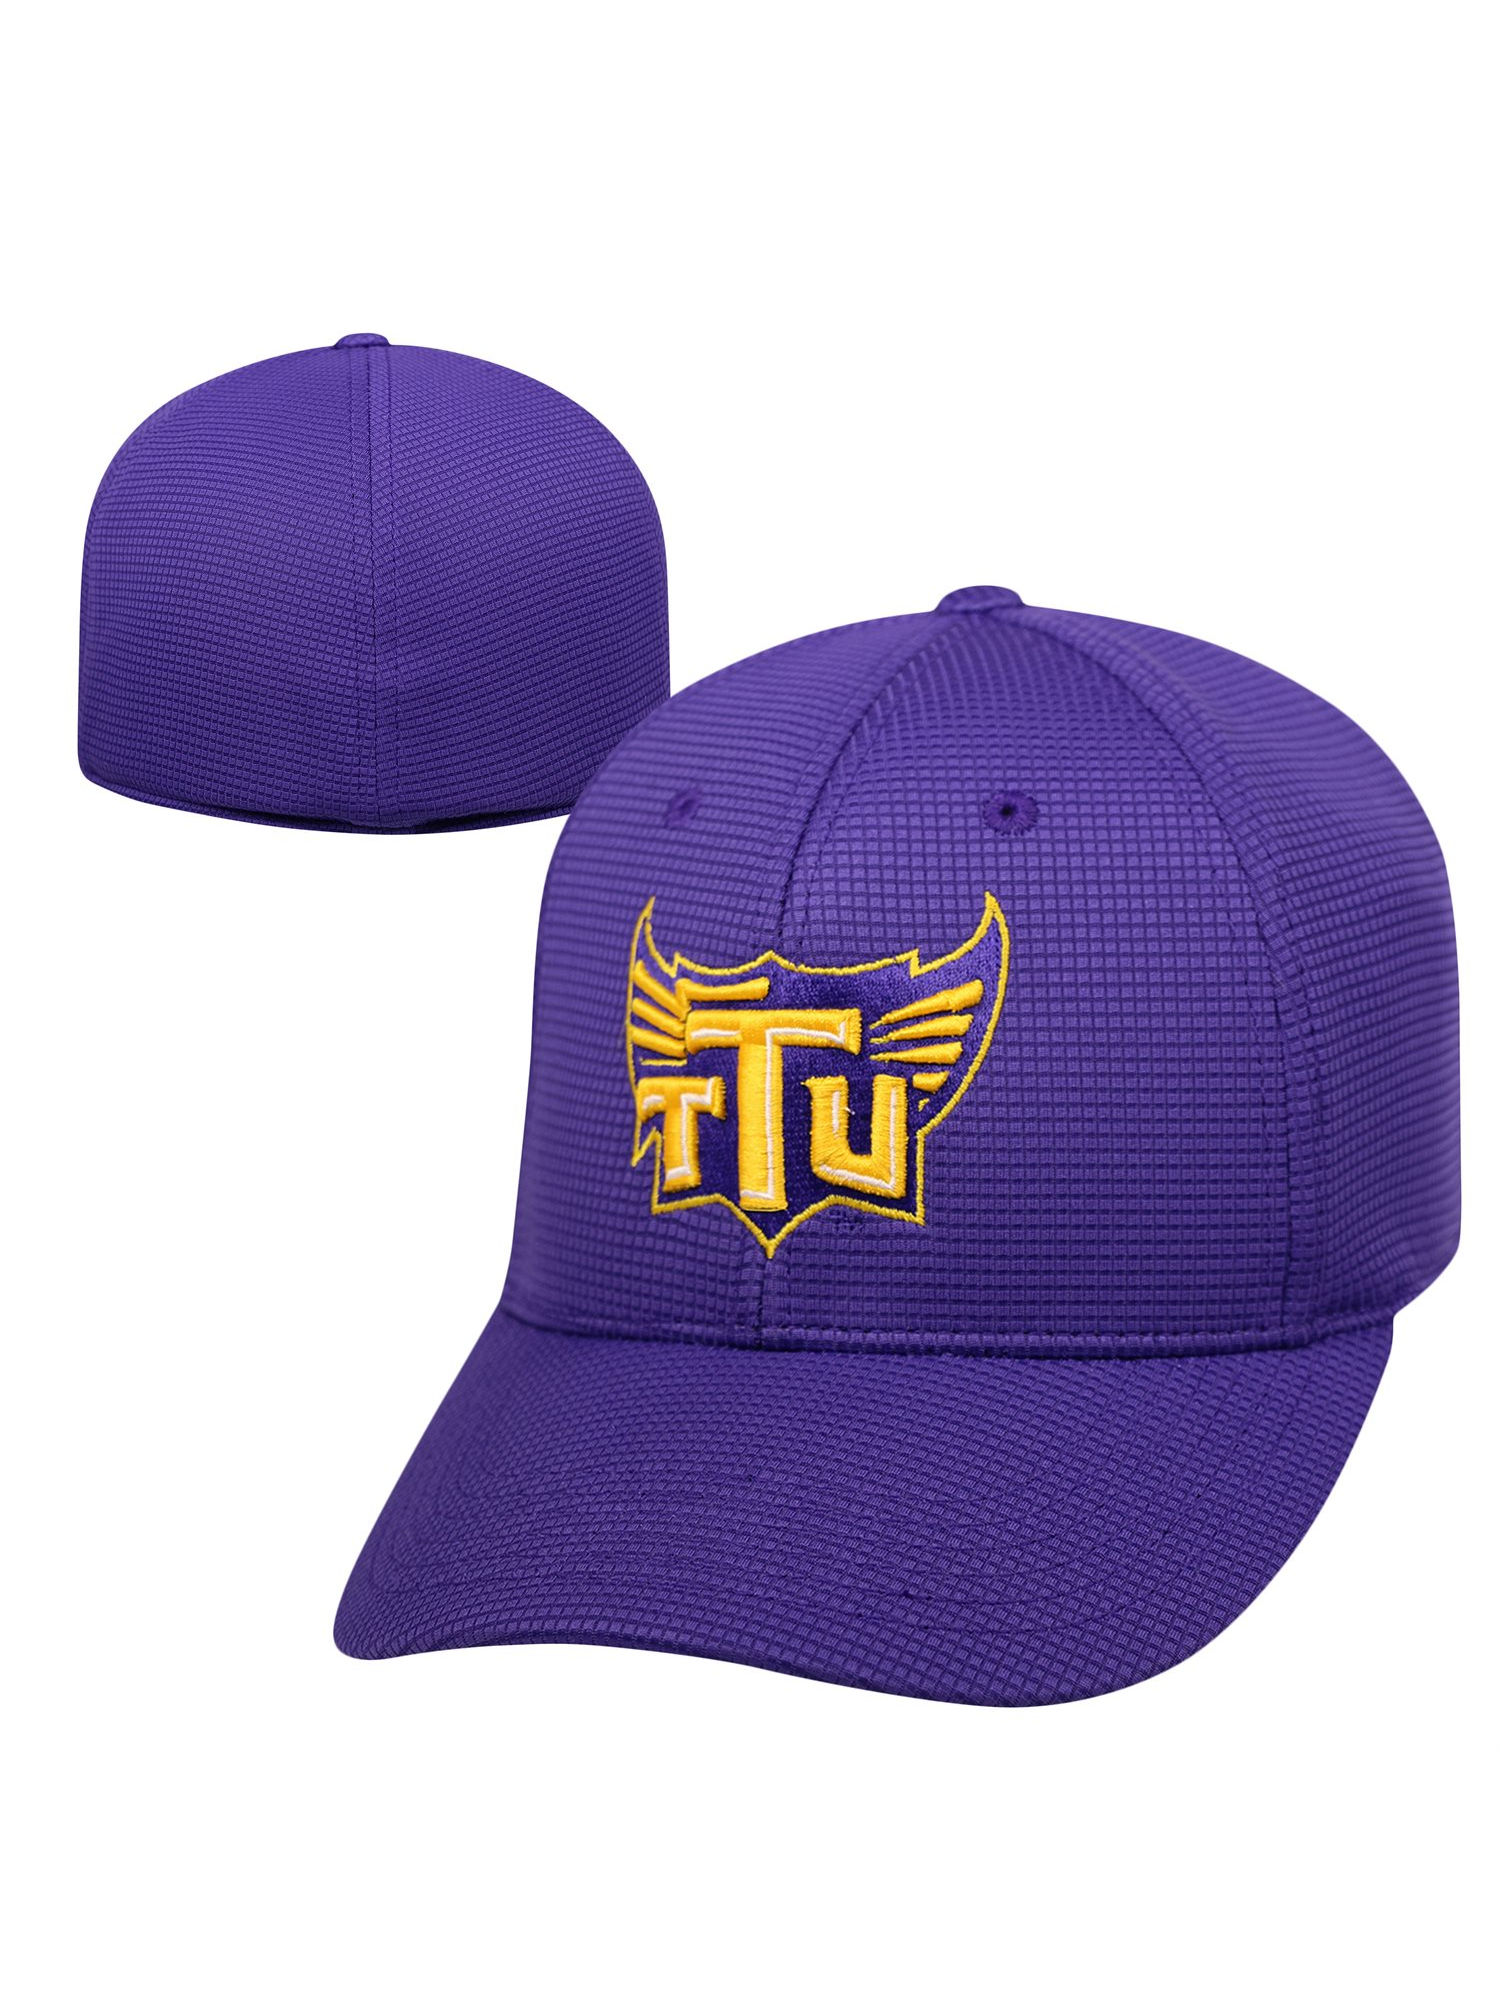 cheap for discount c8335 ba13b ... low cost tennessee tech golden eagles official ncaa one fit booster  plus hat cap by top